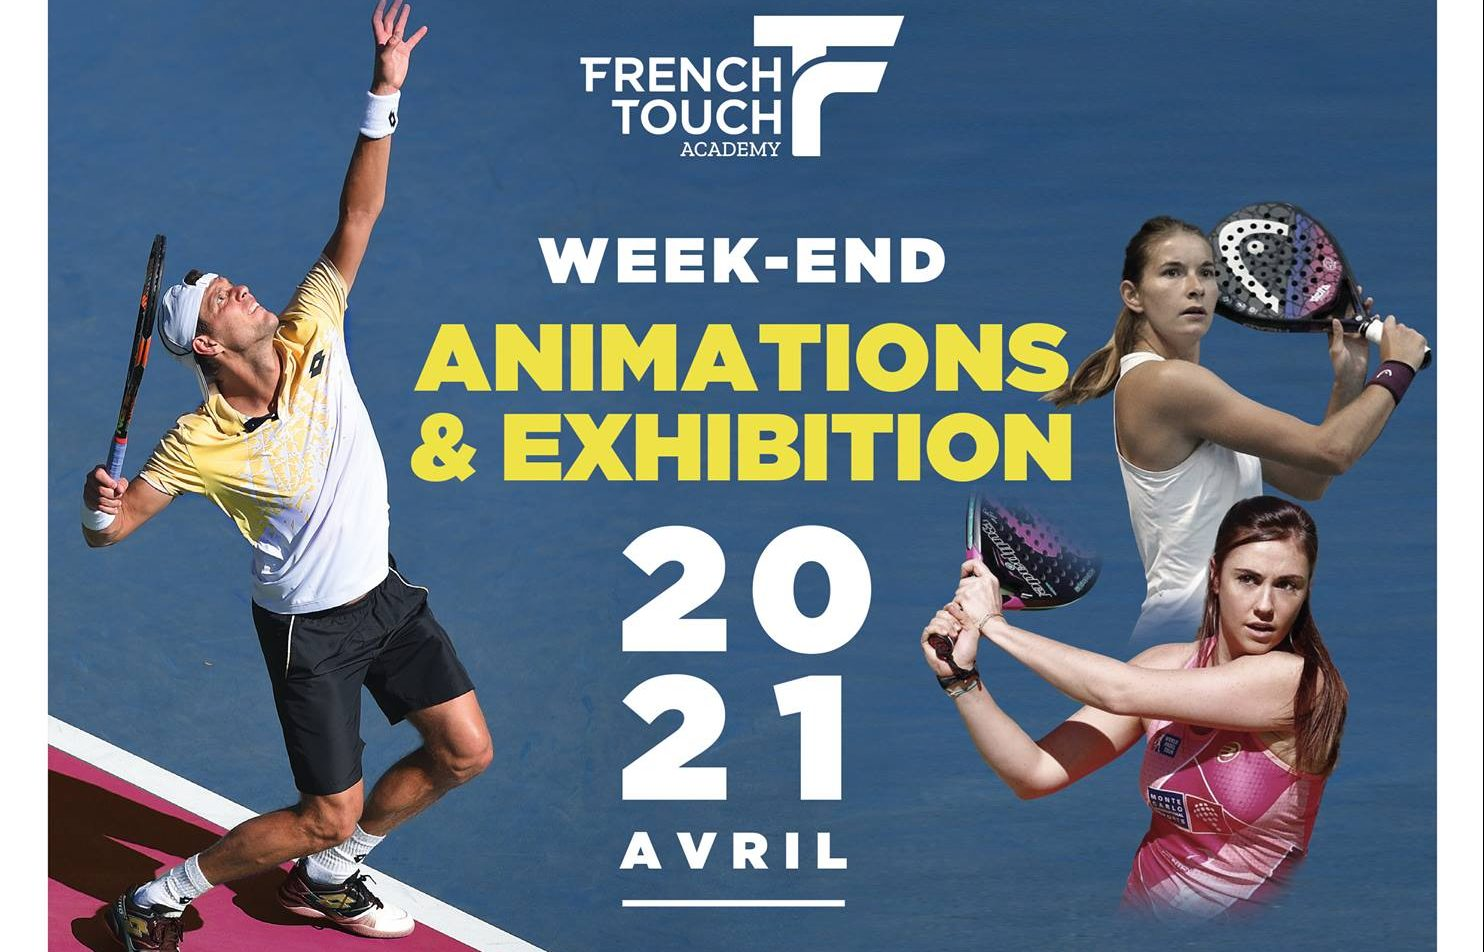 La French Touch Academy en mode padel